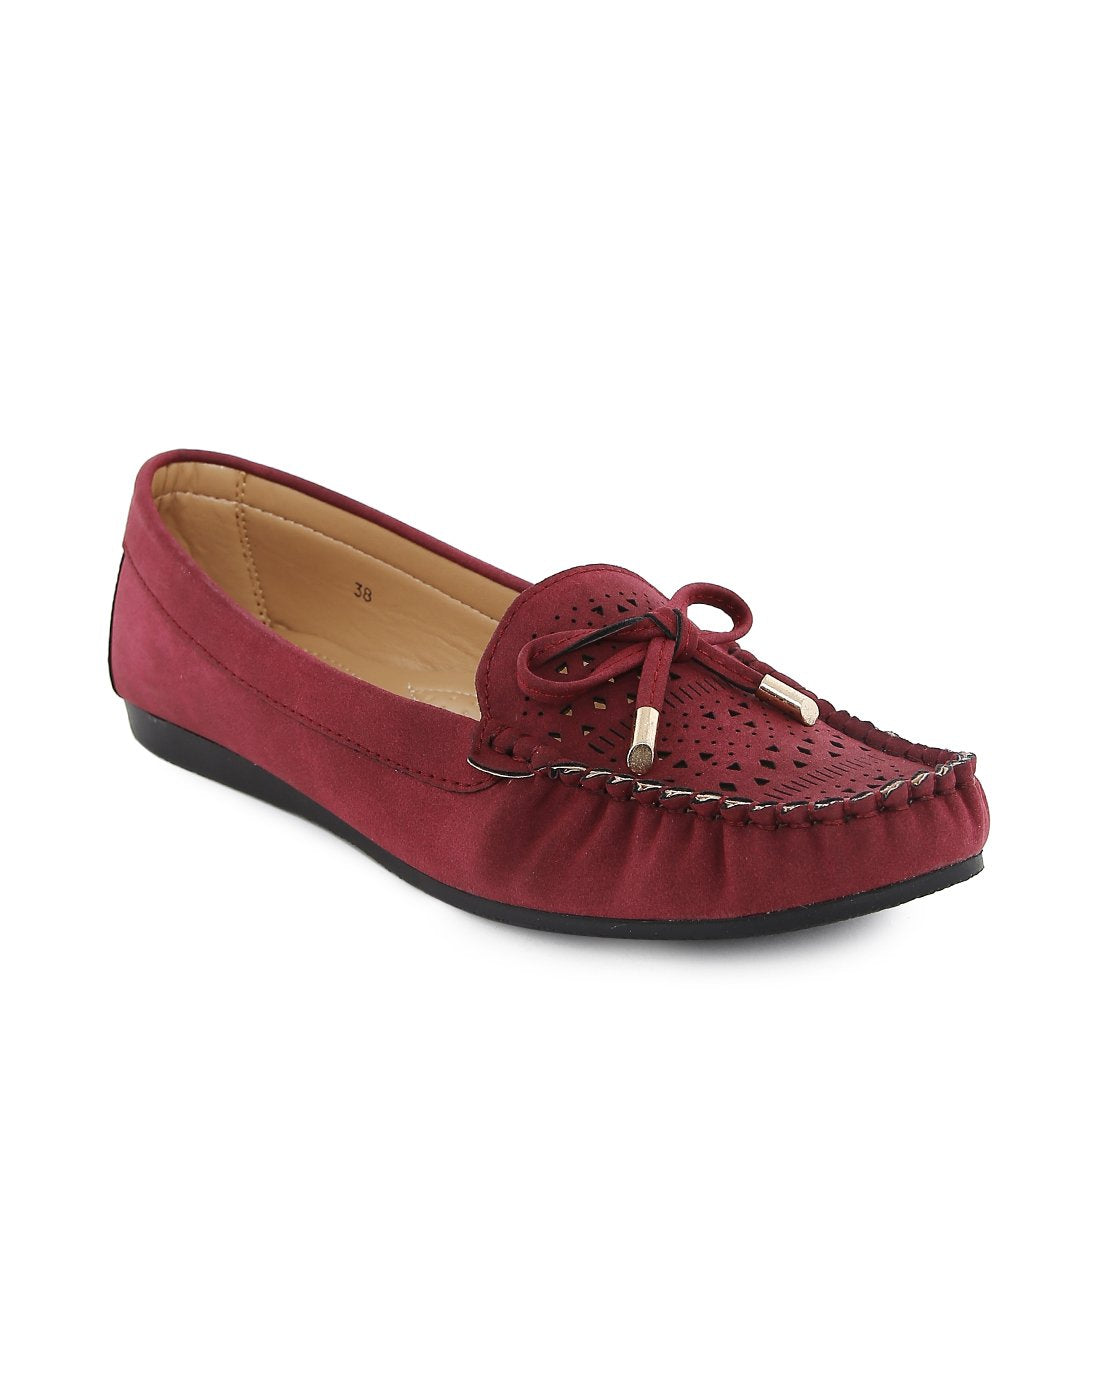 Iason Dressed Down Loafers